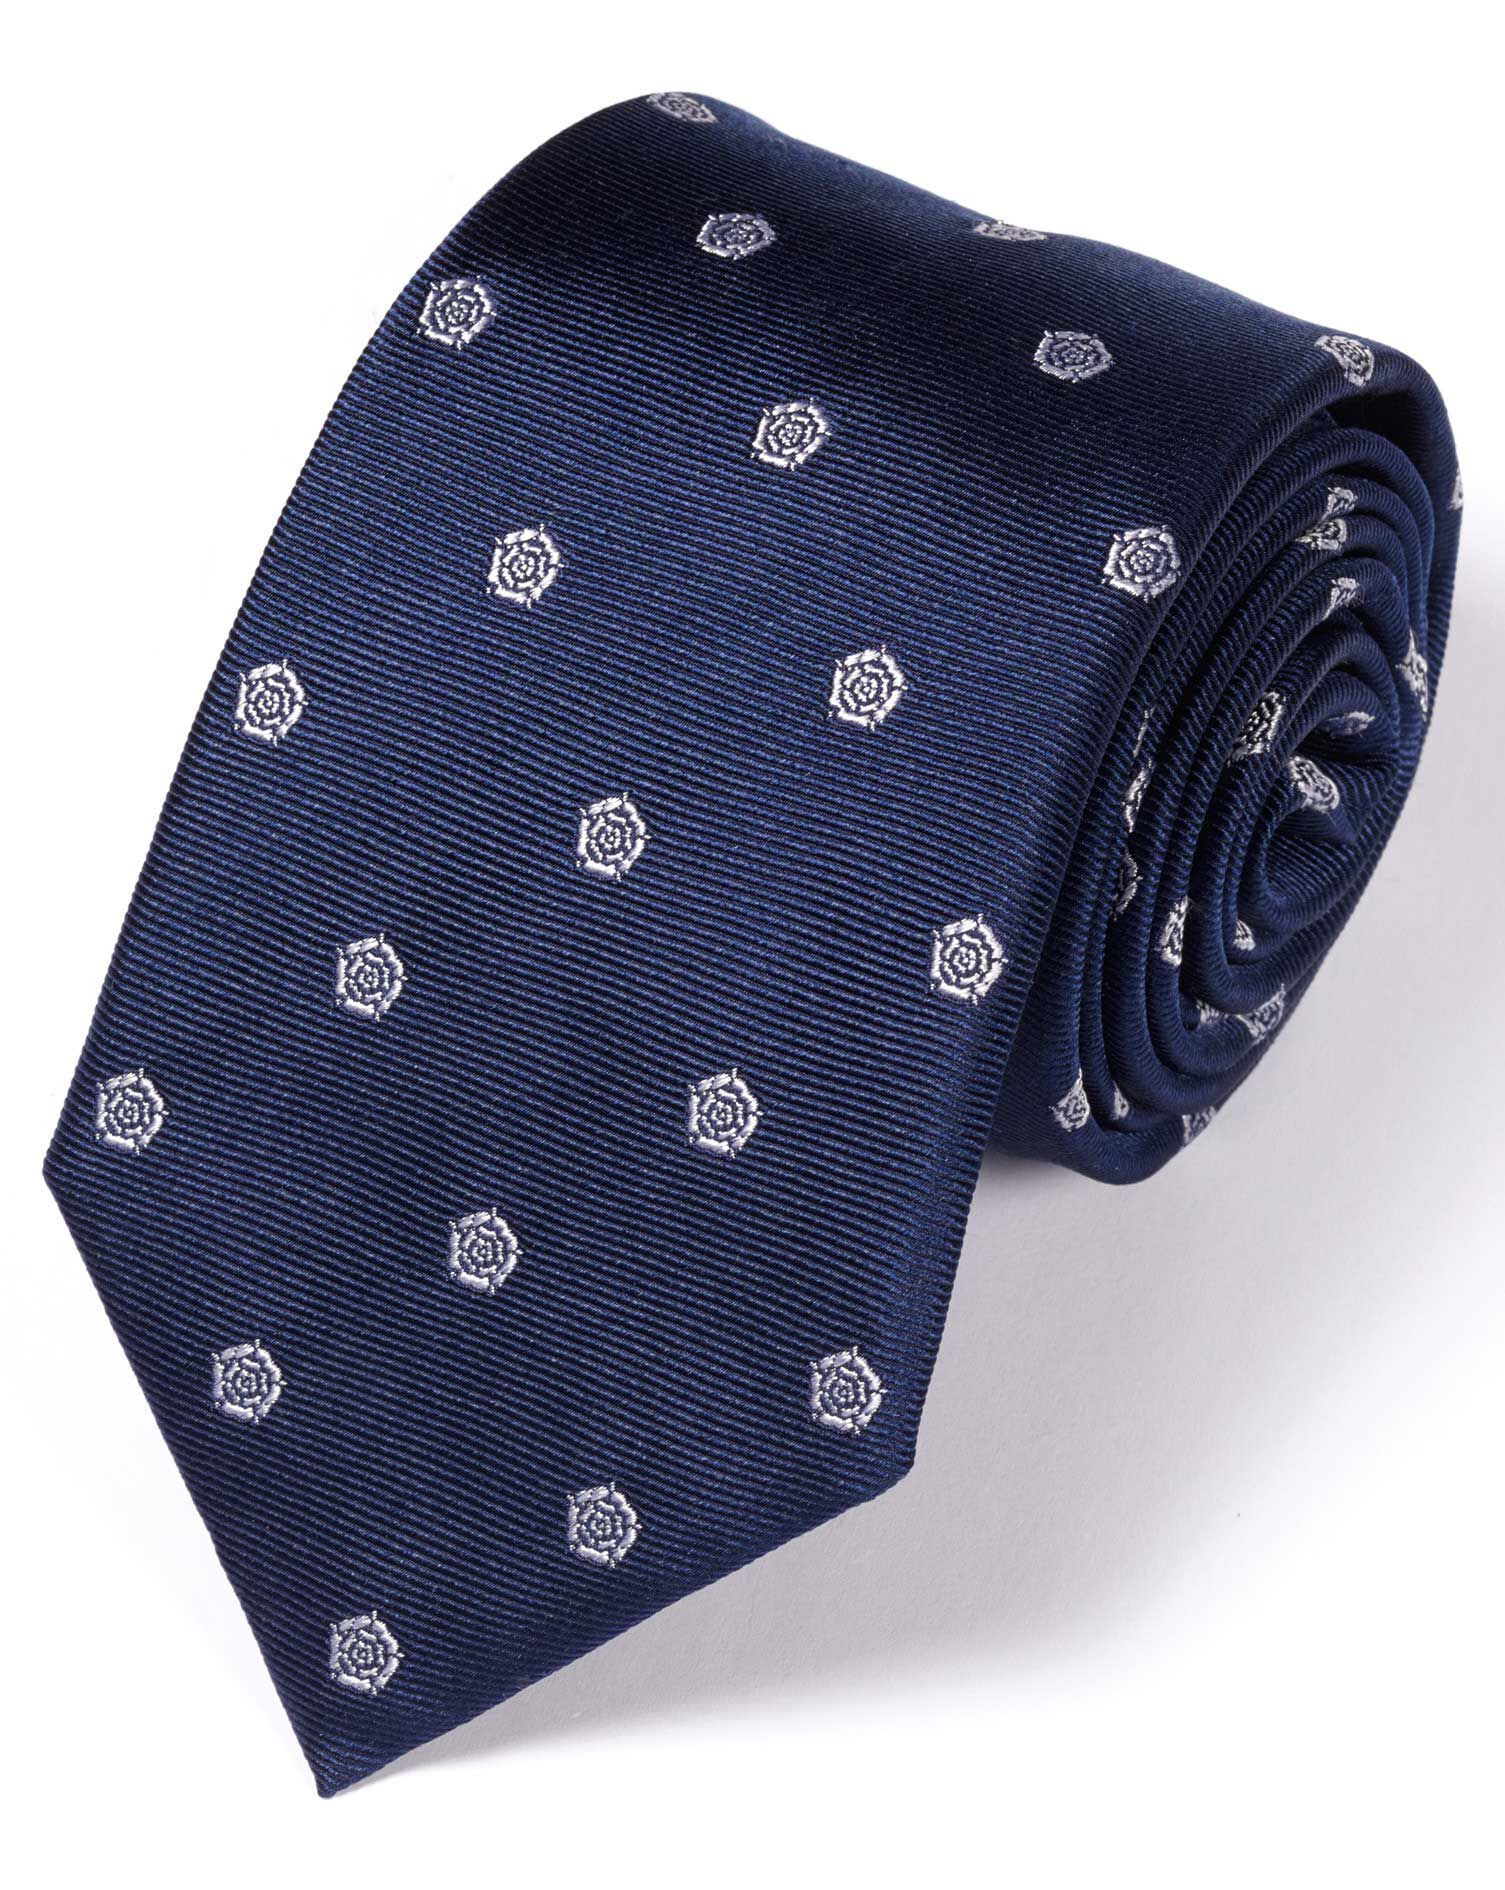 Navy and White Silk English Rose Classic Tie Size OSFA by Charles Tyrwhitt